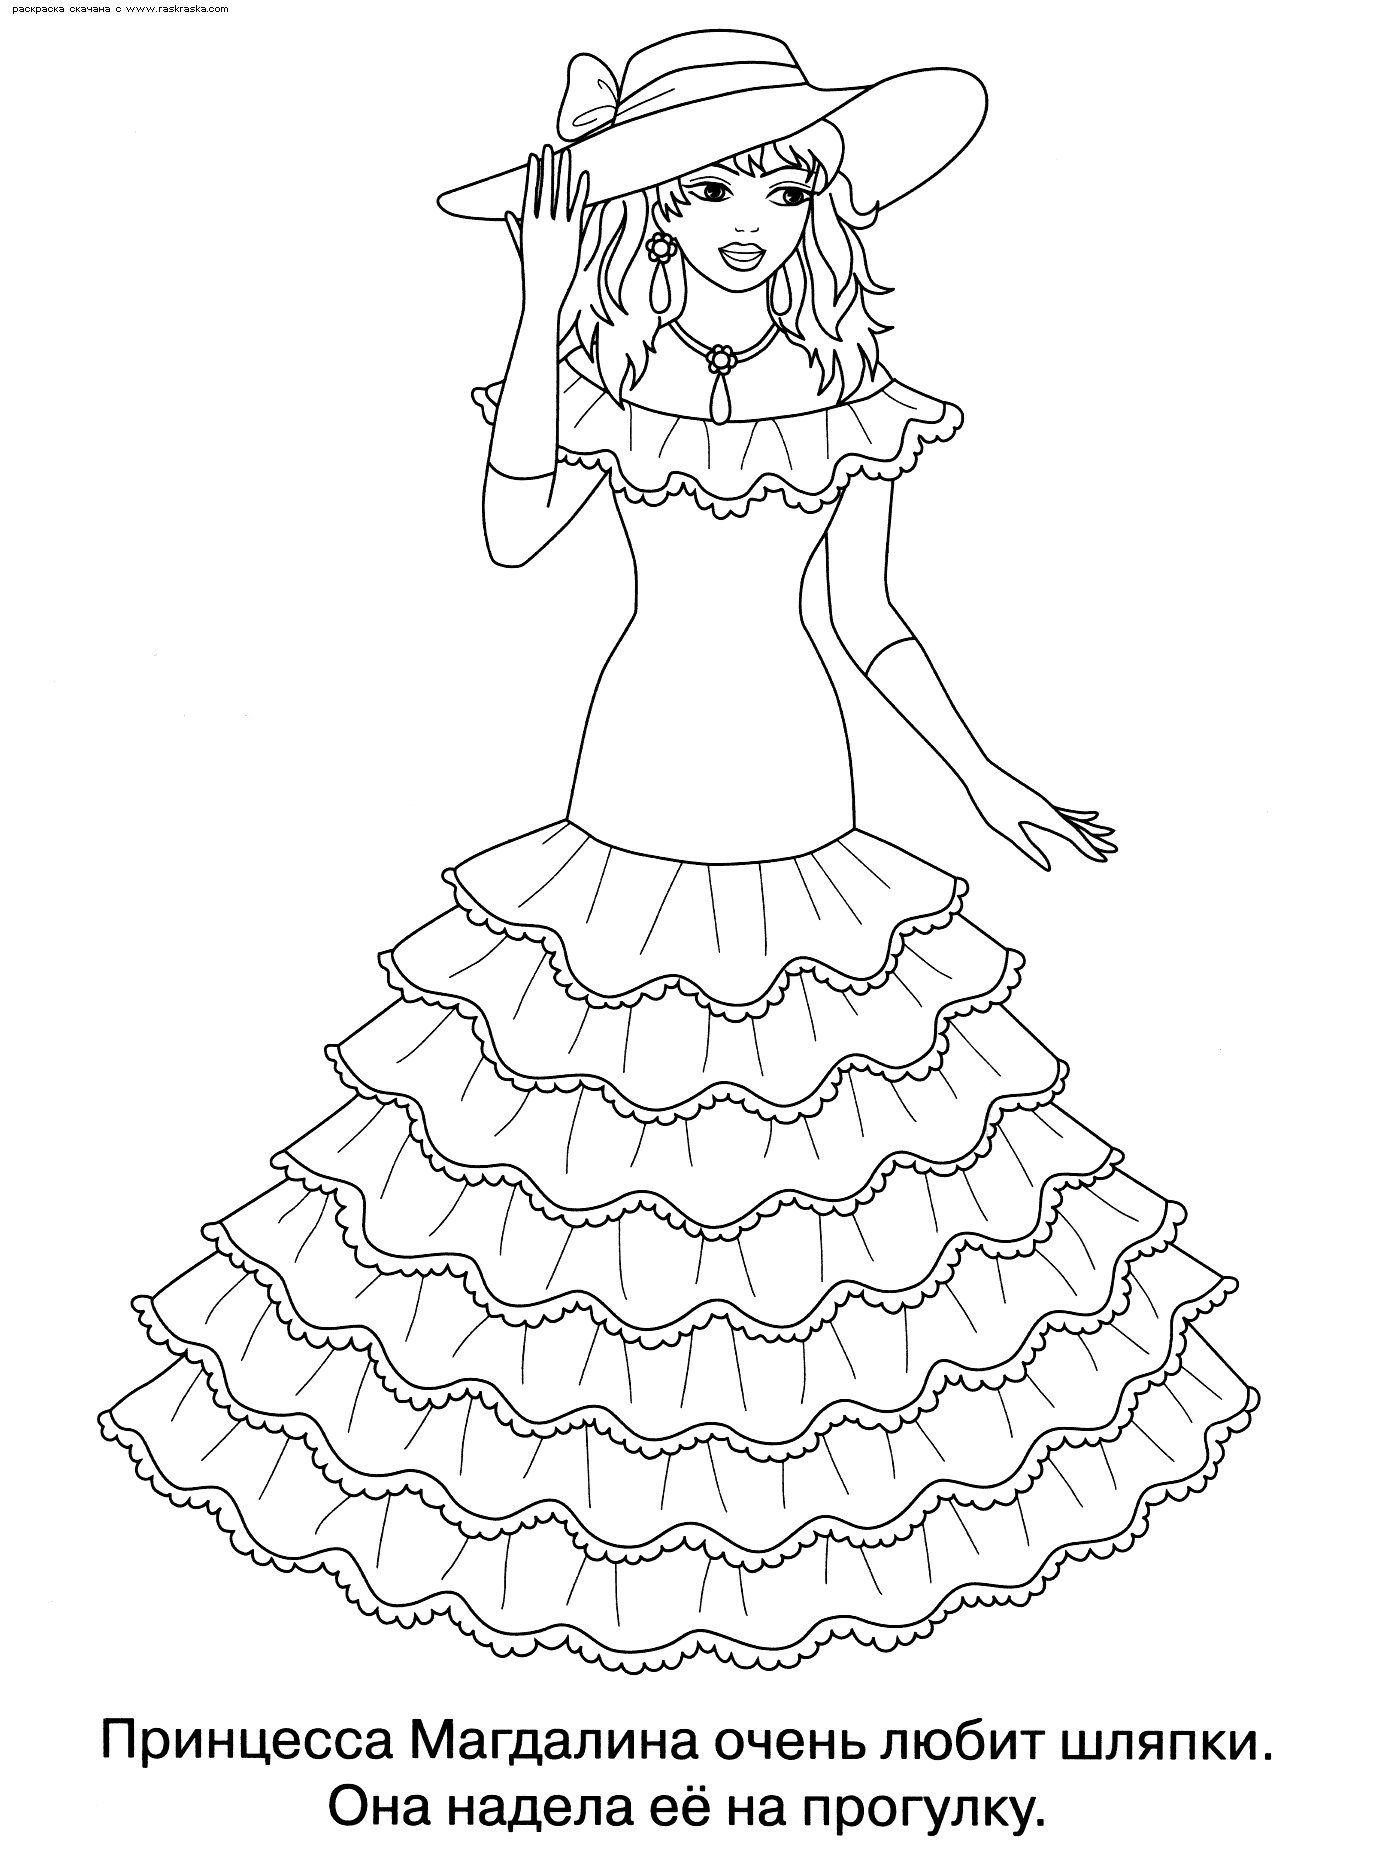 Coloring For Girls Print Coloring Pages For Girls Free Raquo Page 52 Princesas Colorir Meninas